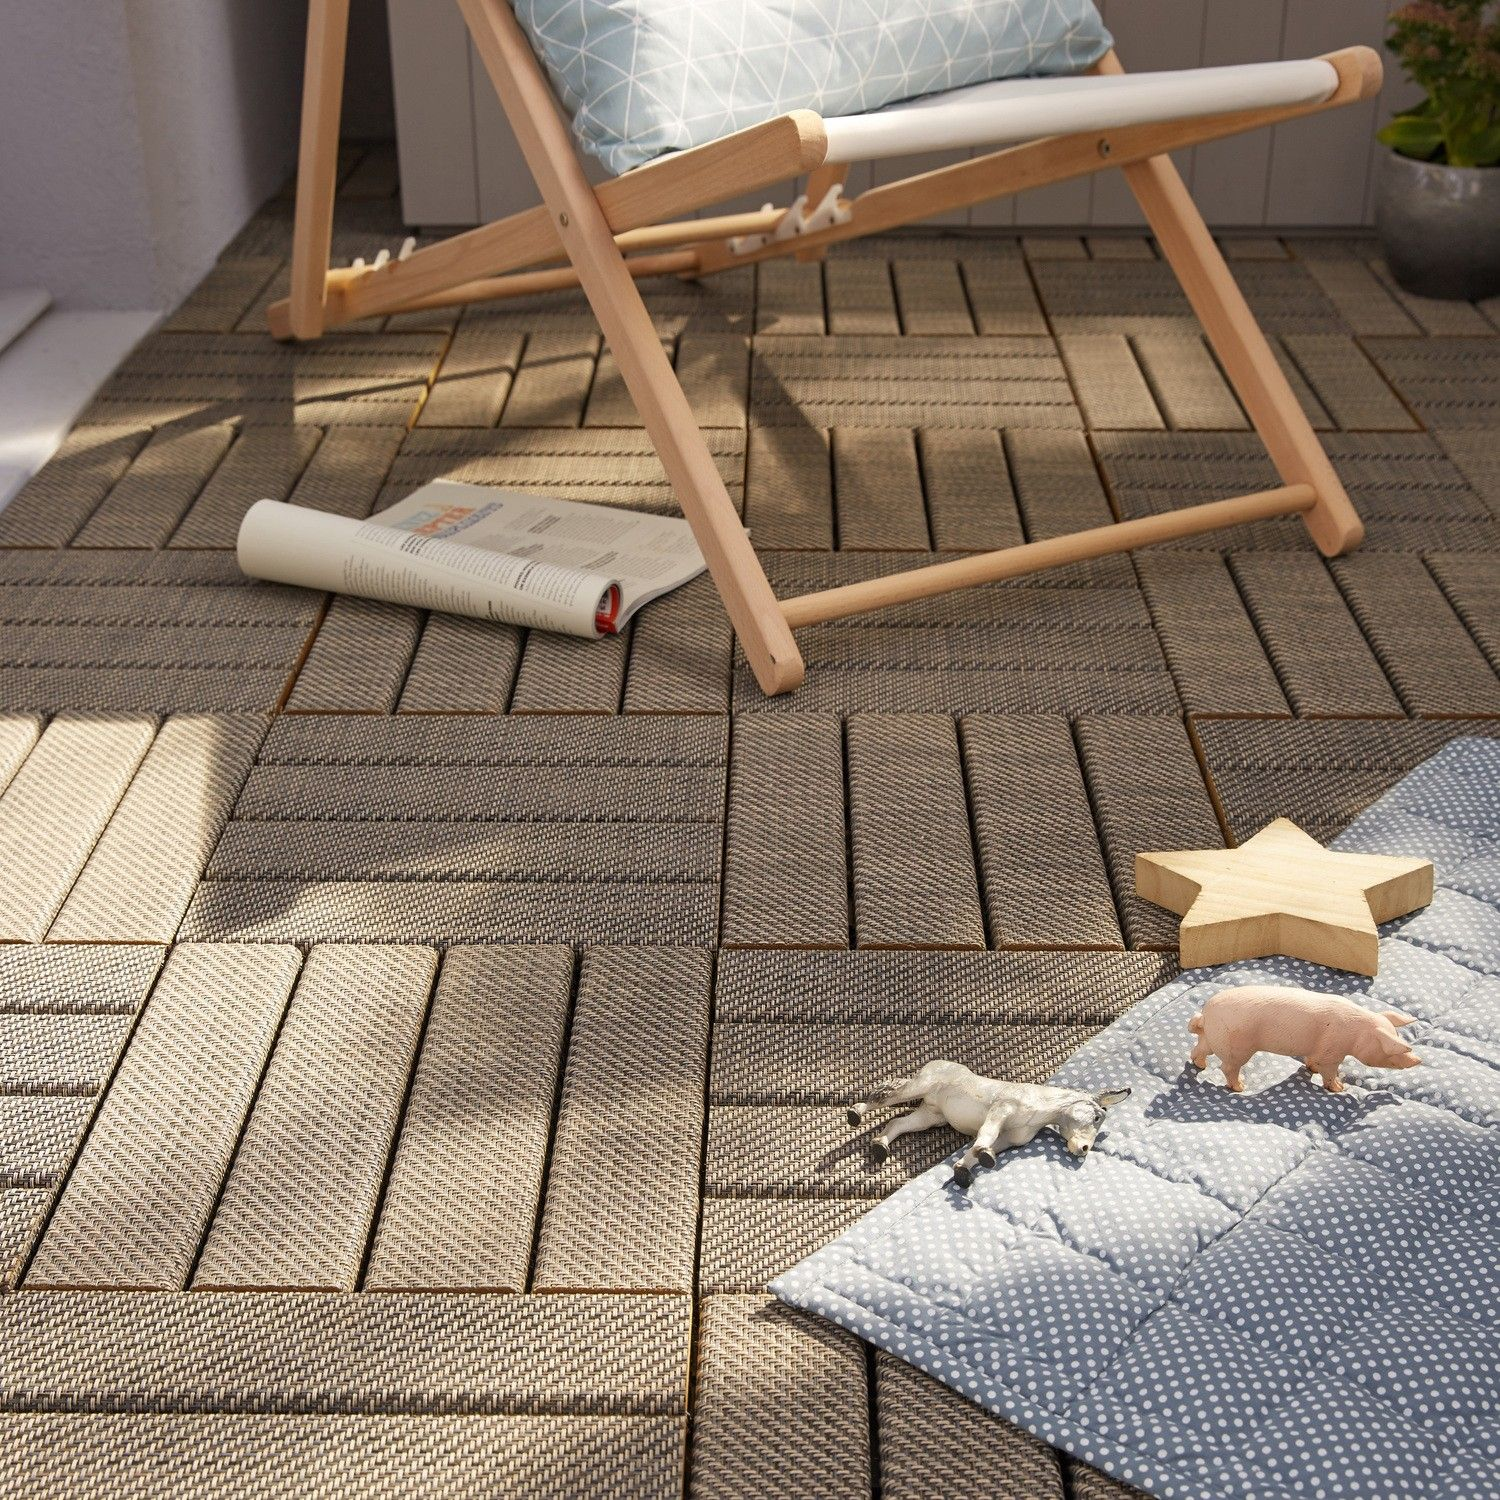 Des Dalles De Terrasse Ideales Pour Le Balcon With Images Kids Rugs Kids Home Decor